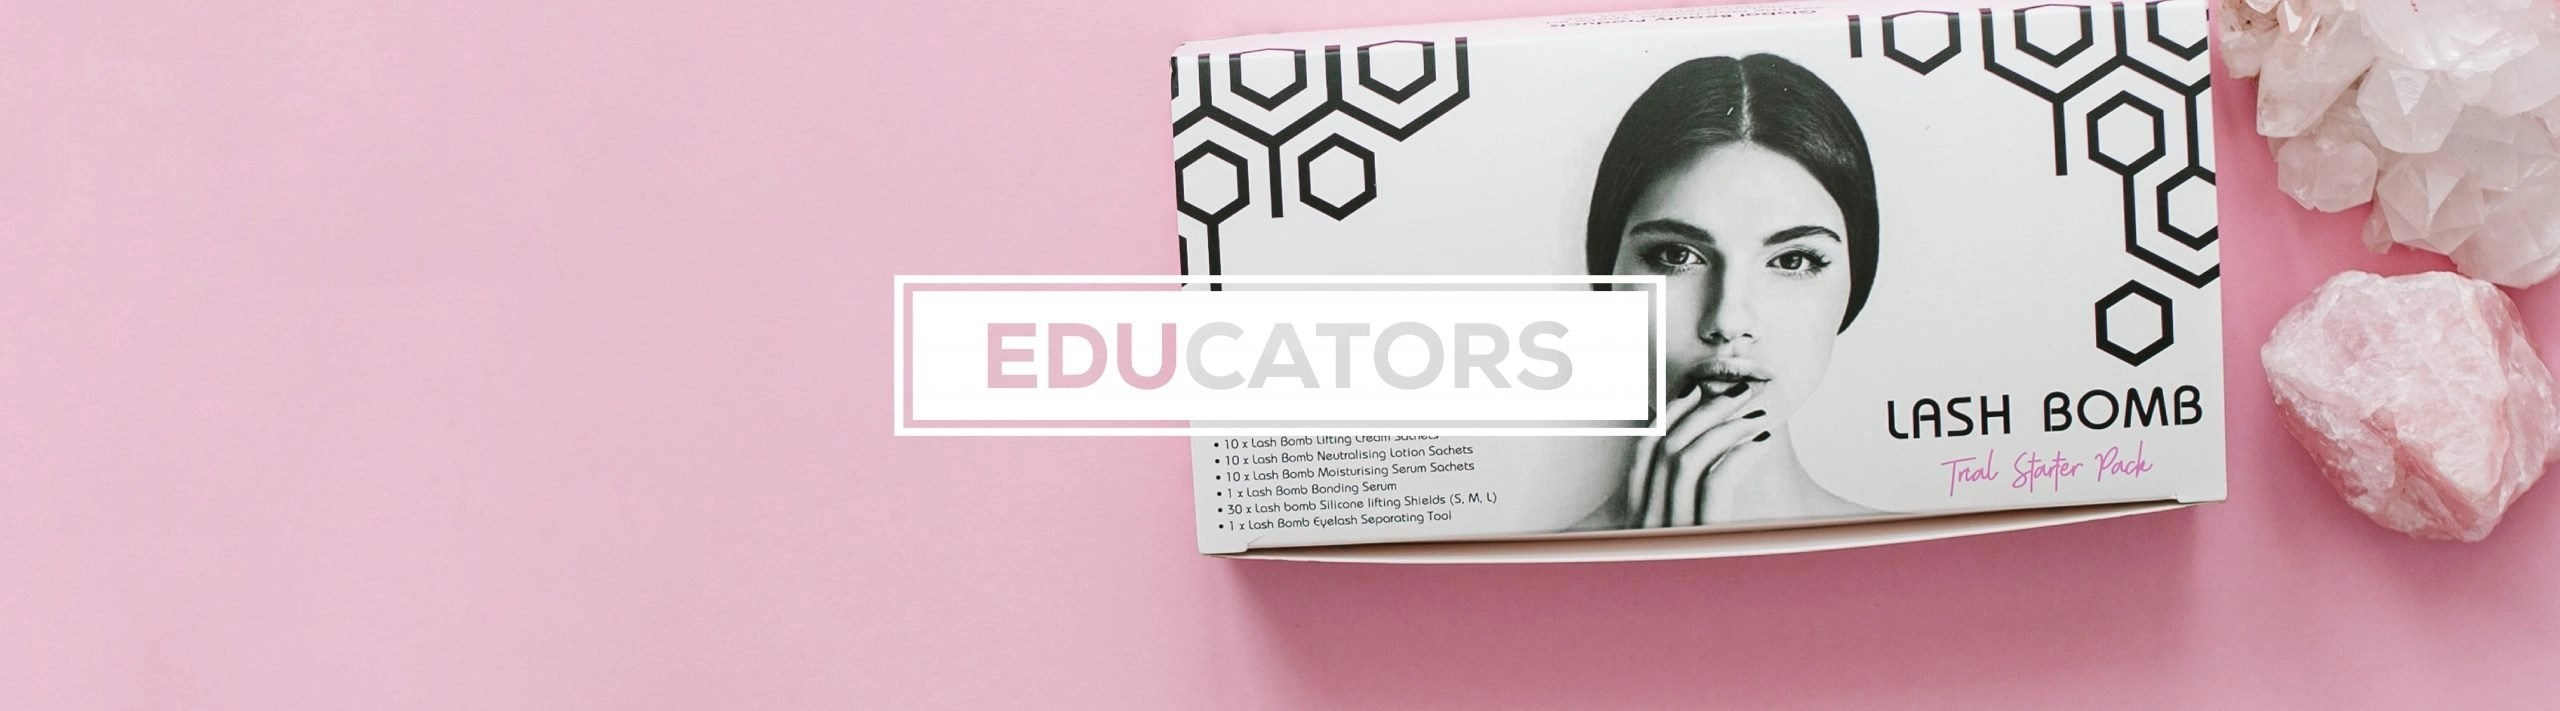 Educator Banner education and training website